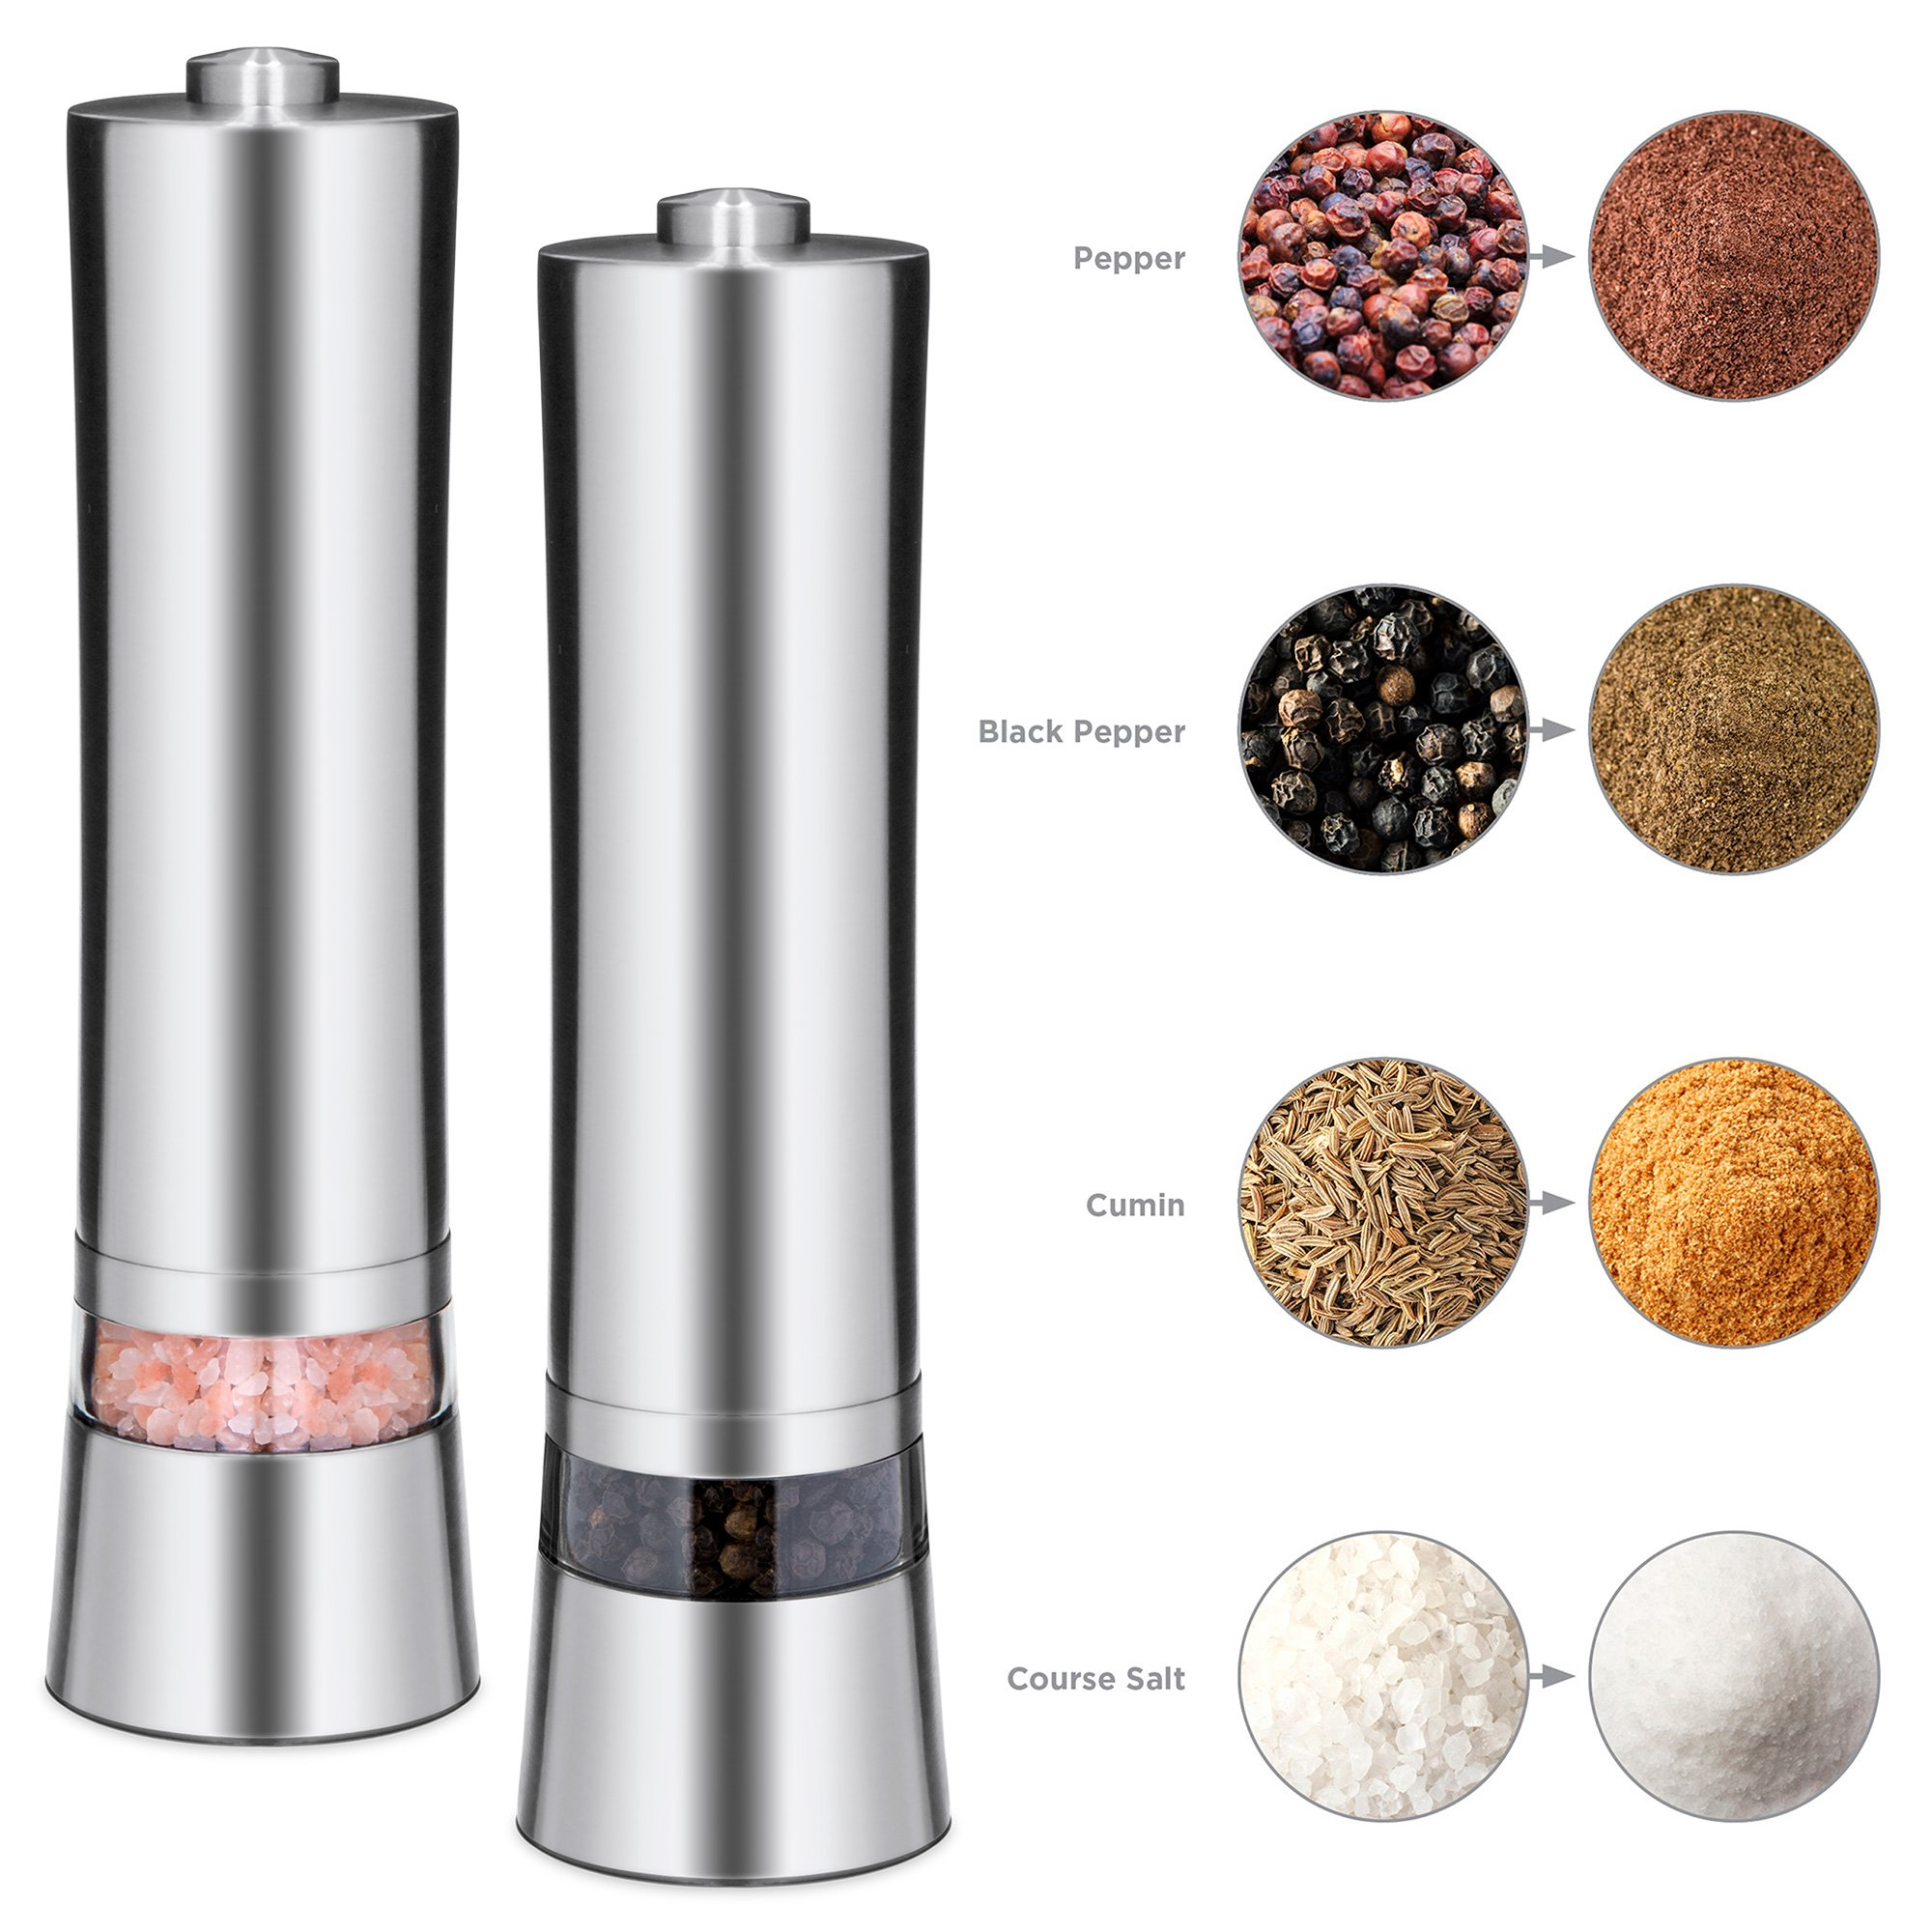 Best Choice Products Set of 2 Stainless Steel Adjustable Pepper Mill Electronic Salt, Pepper, Spice Grinder Set w/Light